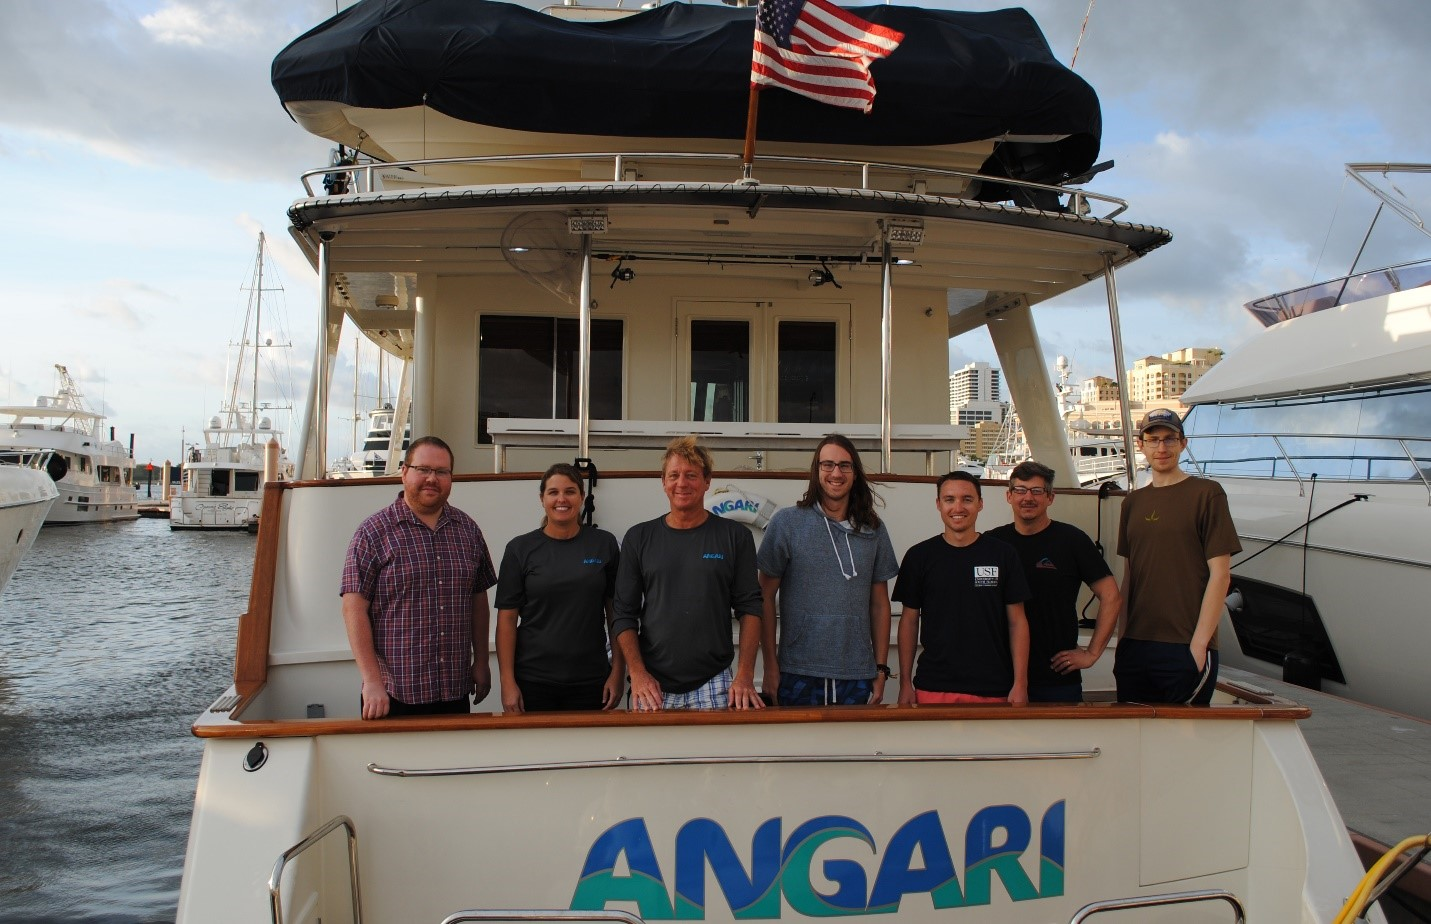 Angela Summers gulf stream trace metals cruise, day 2 – return from the